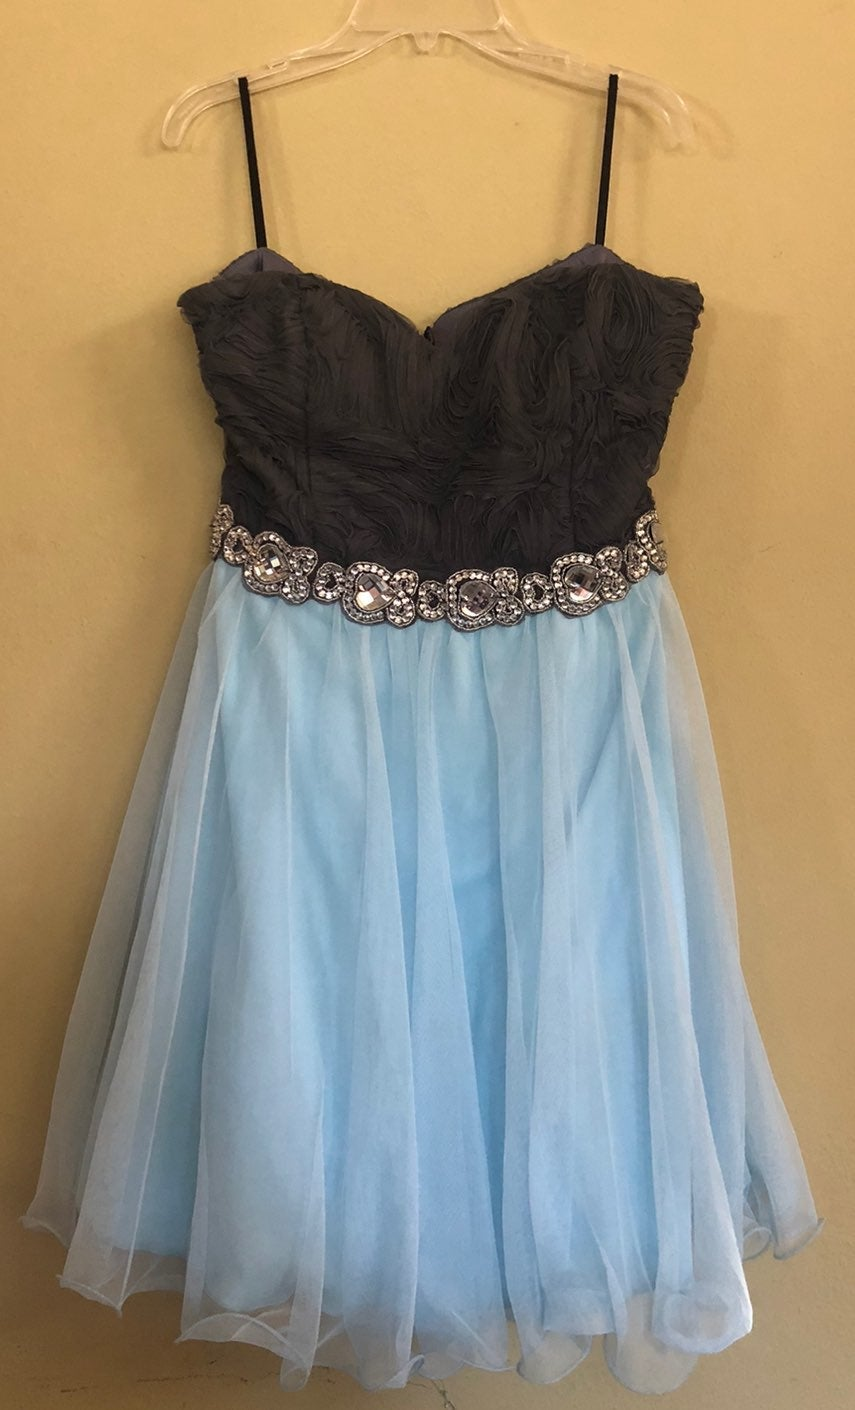 strapless formal party dress size 13